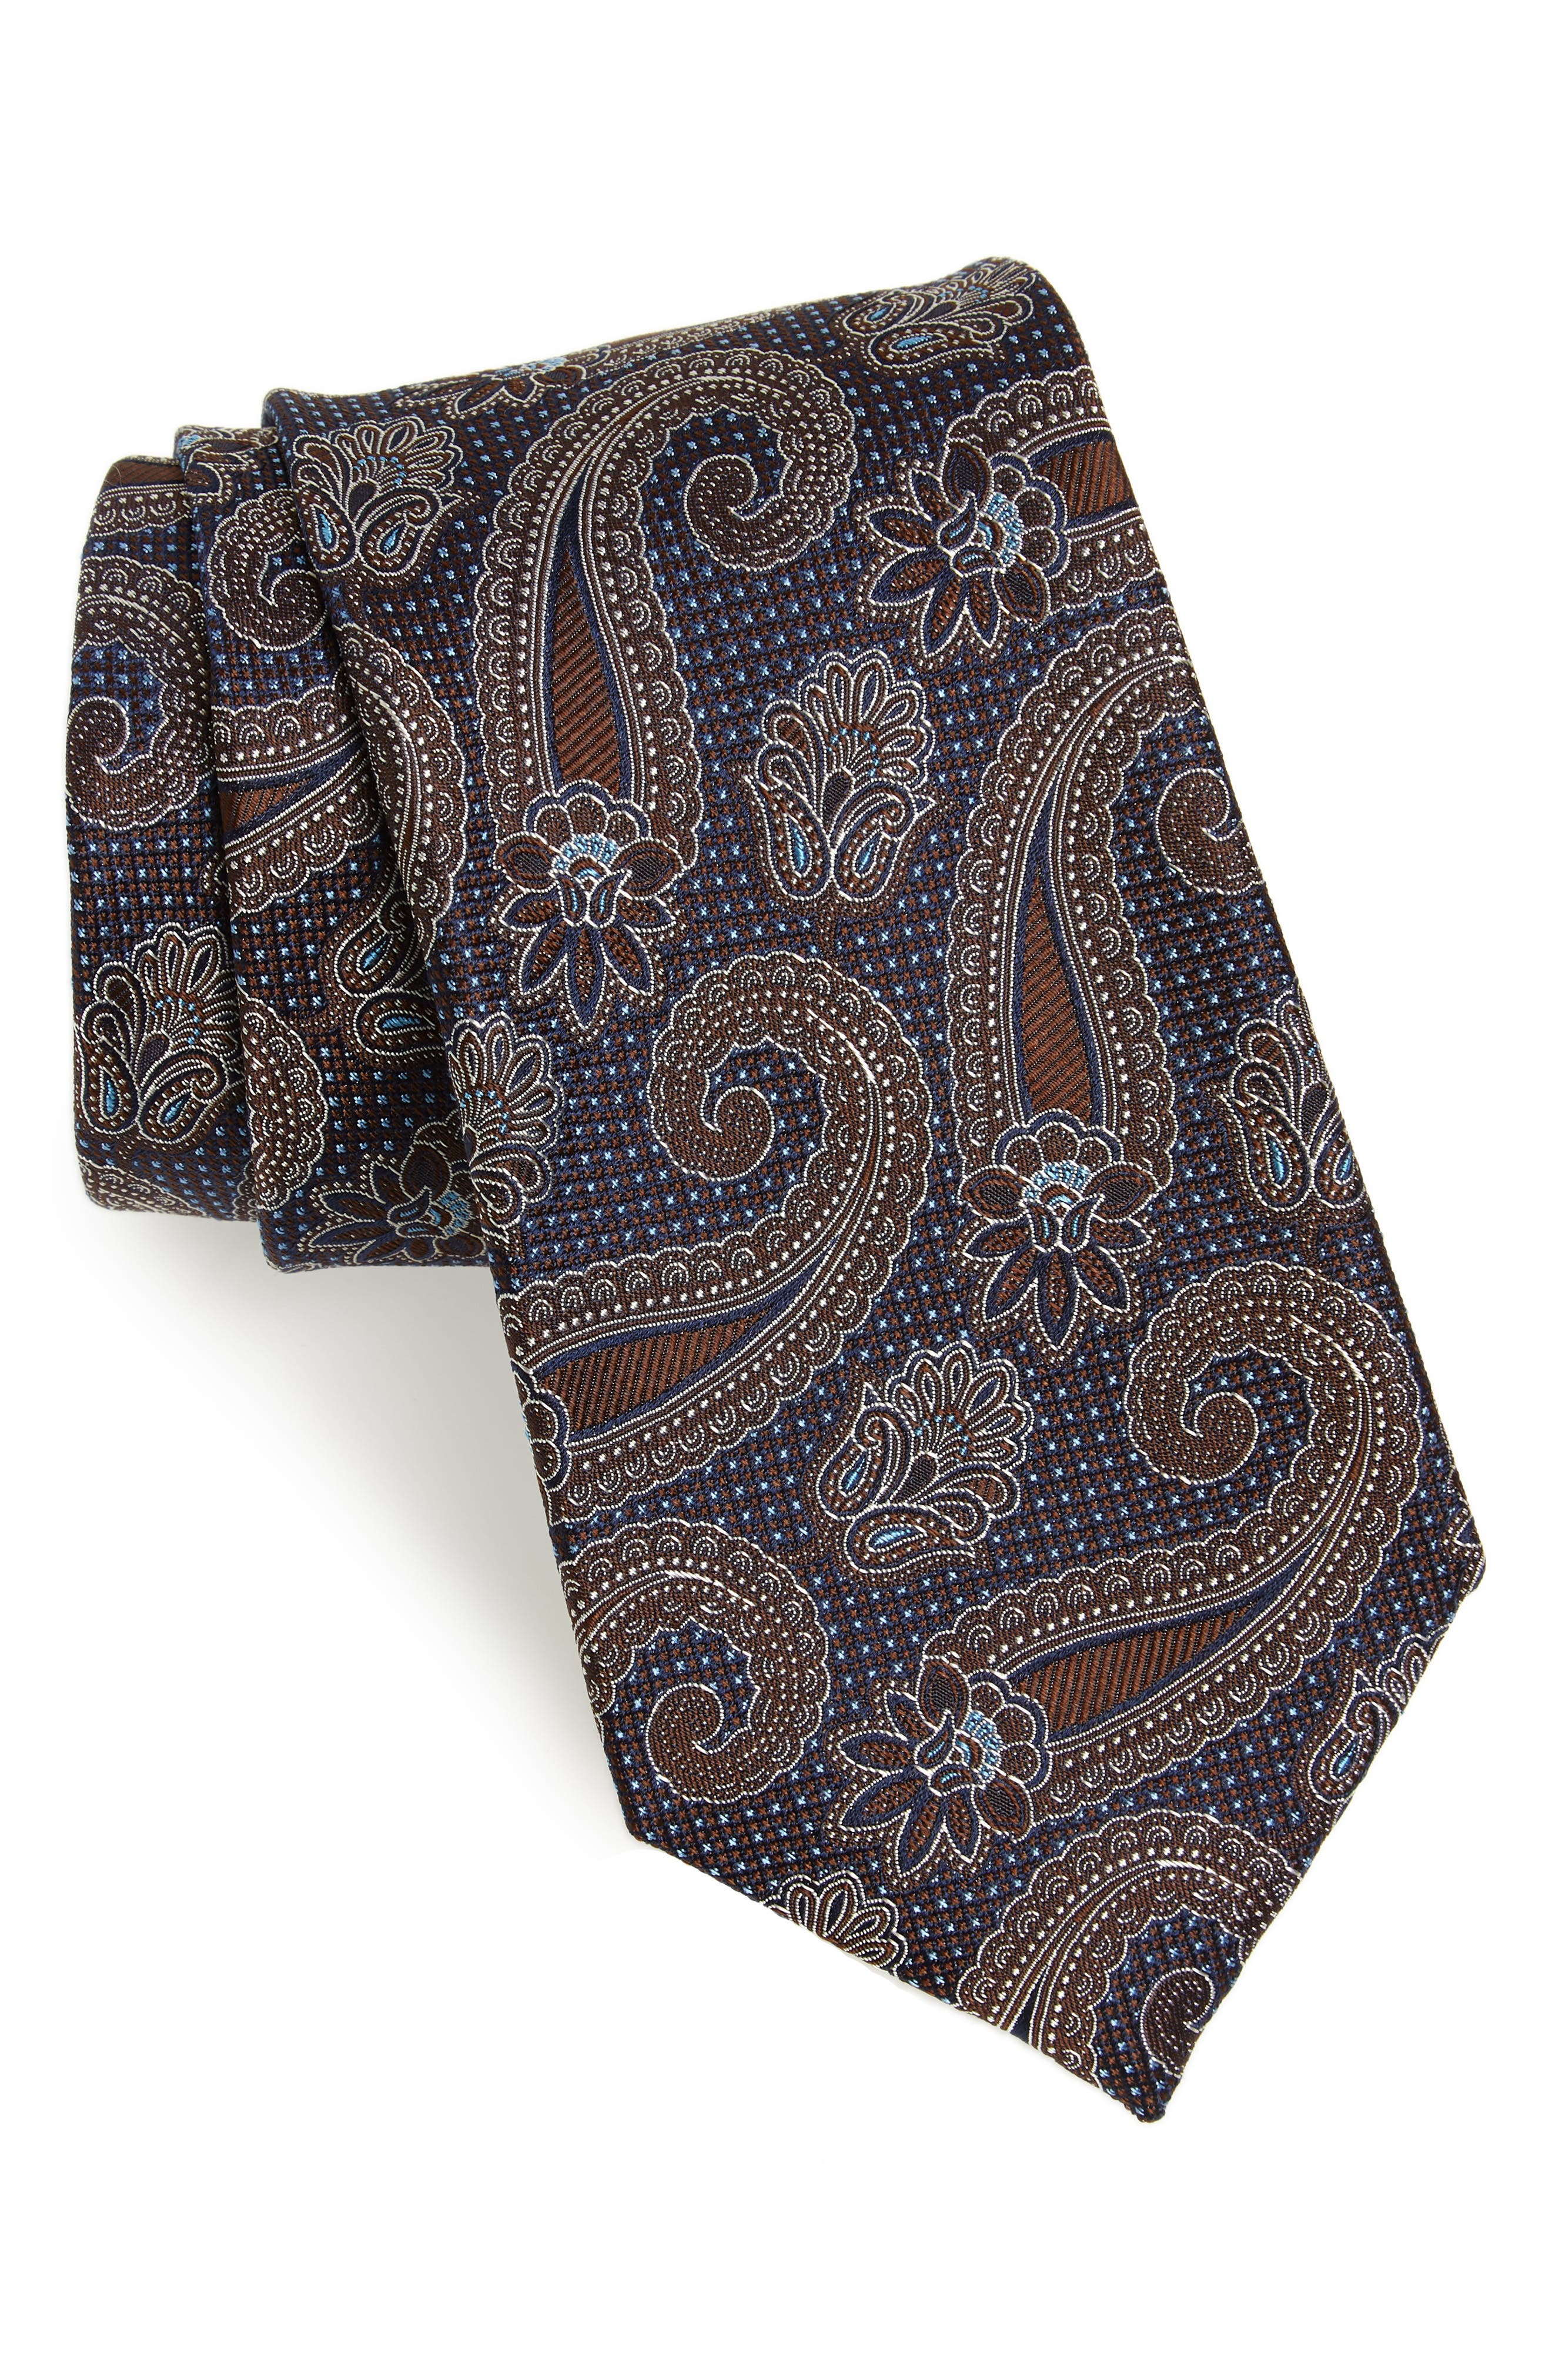 Emery Paisley Silk Tie,                             Main thumbnail 1, color,                             200